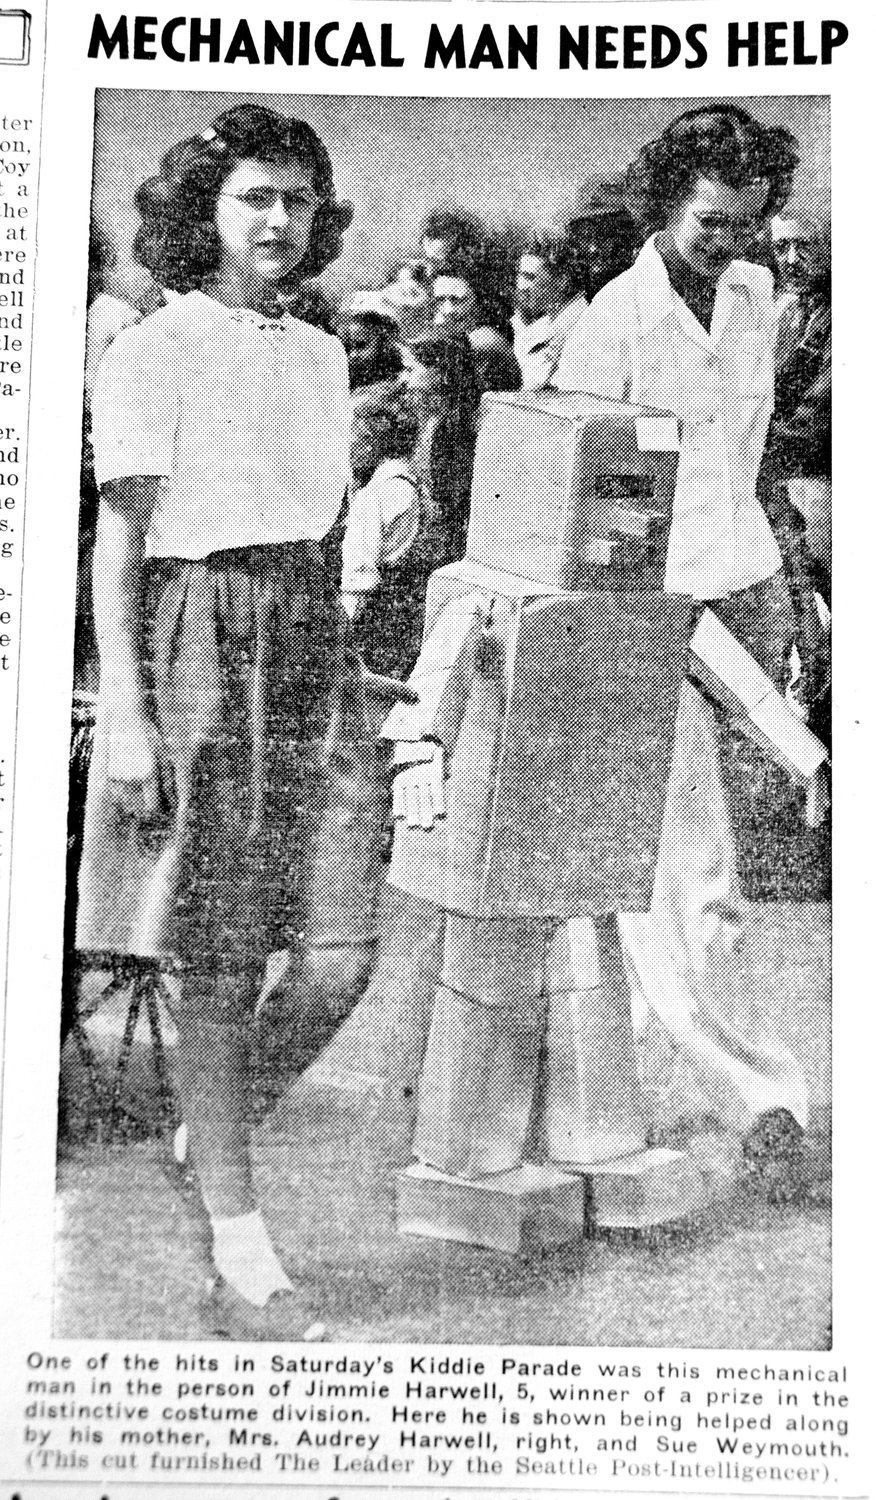 This was one of the only photos of the Rhododendron Festival 1946, which was the first one after the festival was put on hold for WWII. 